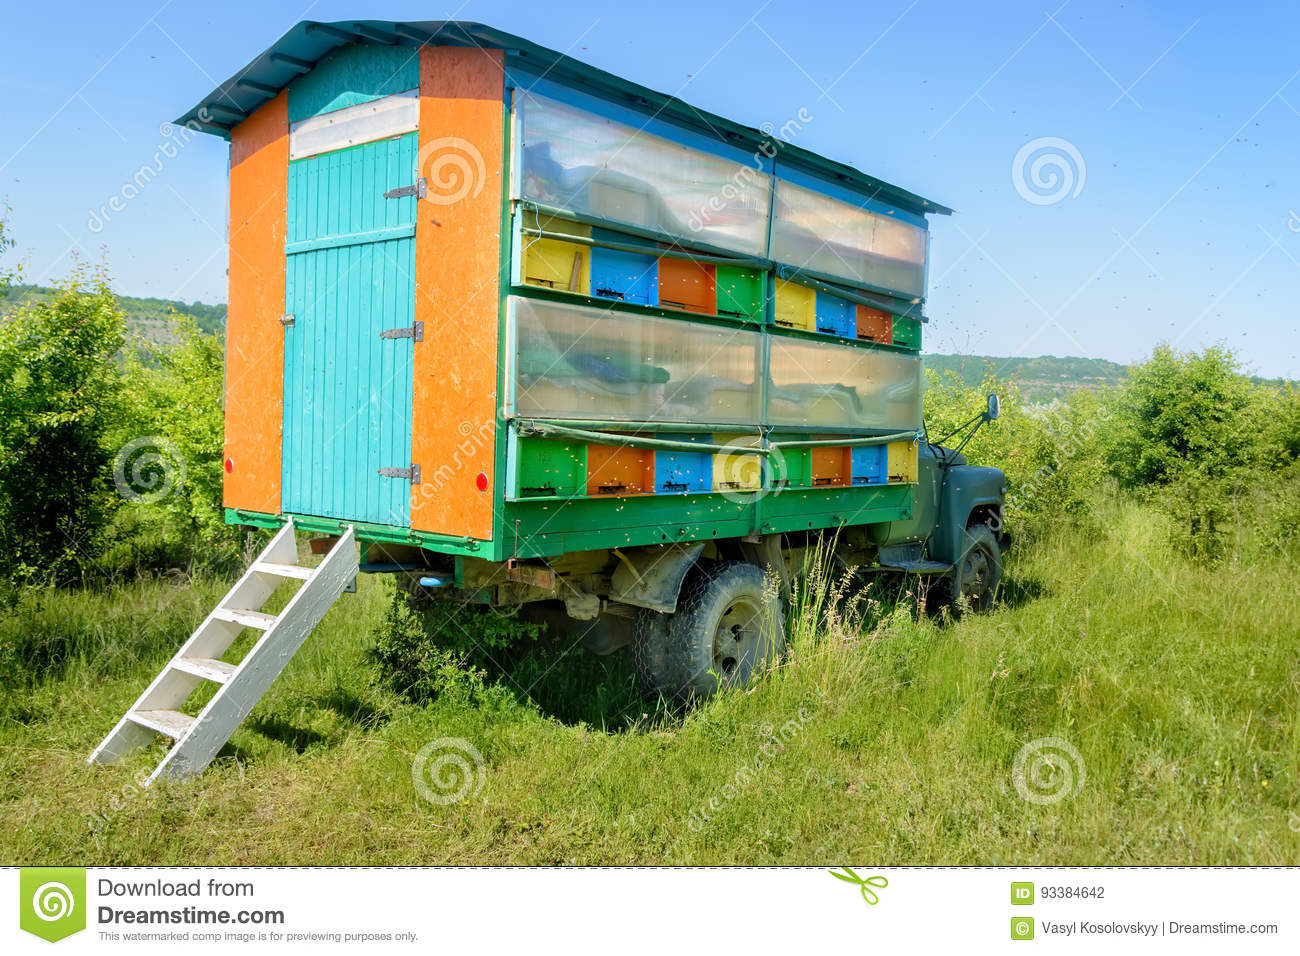 Colorful mobile beehive, apiary. Apiculture.